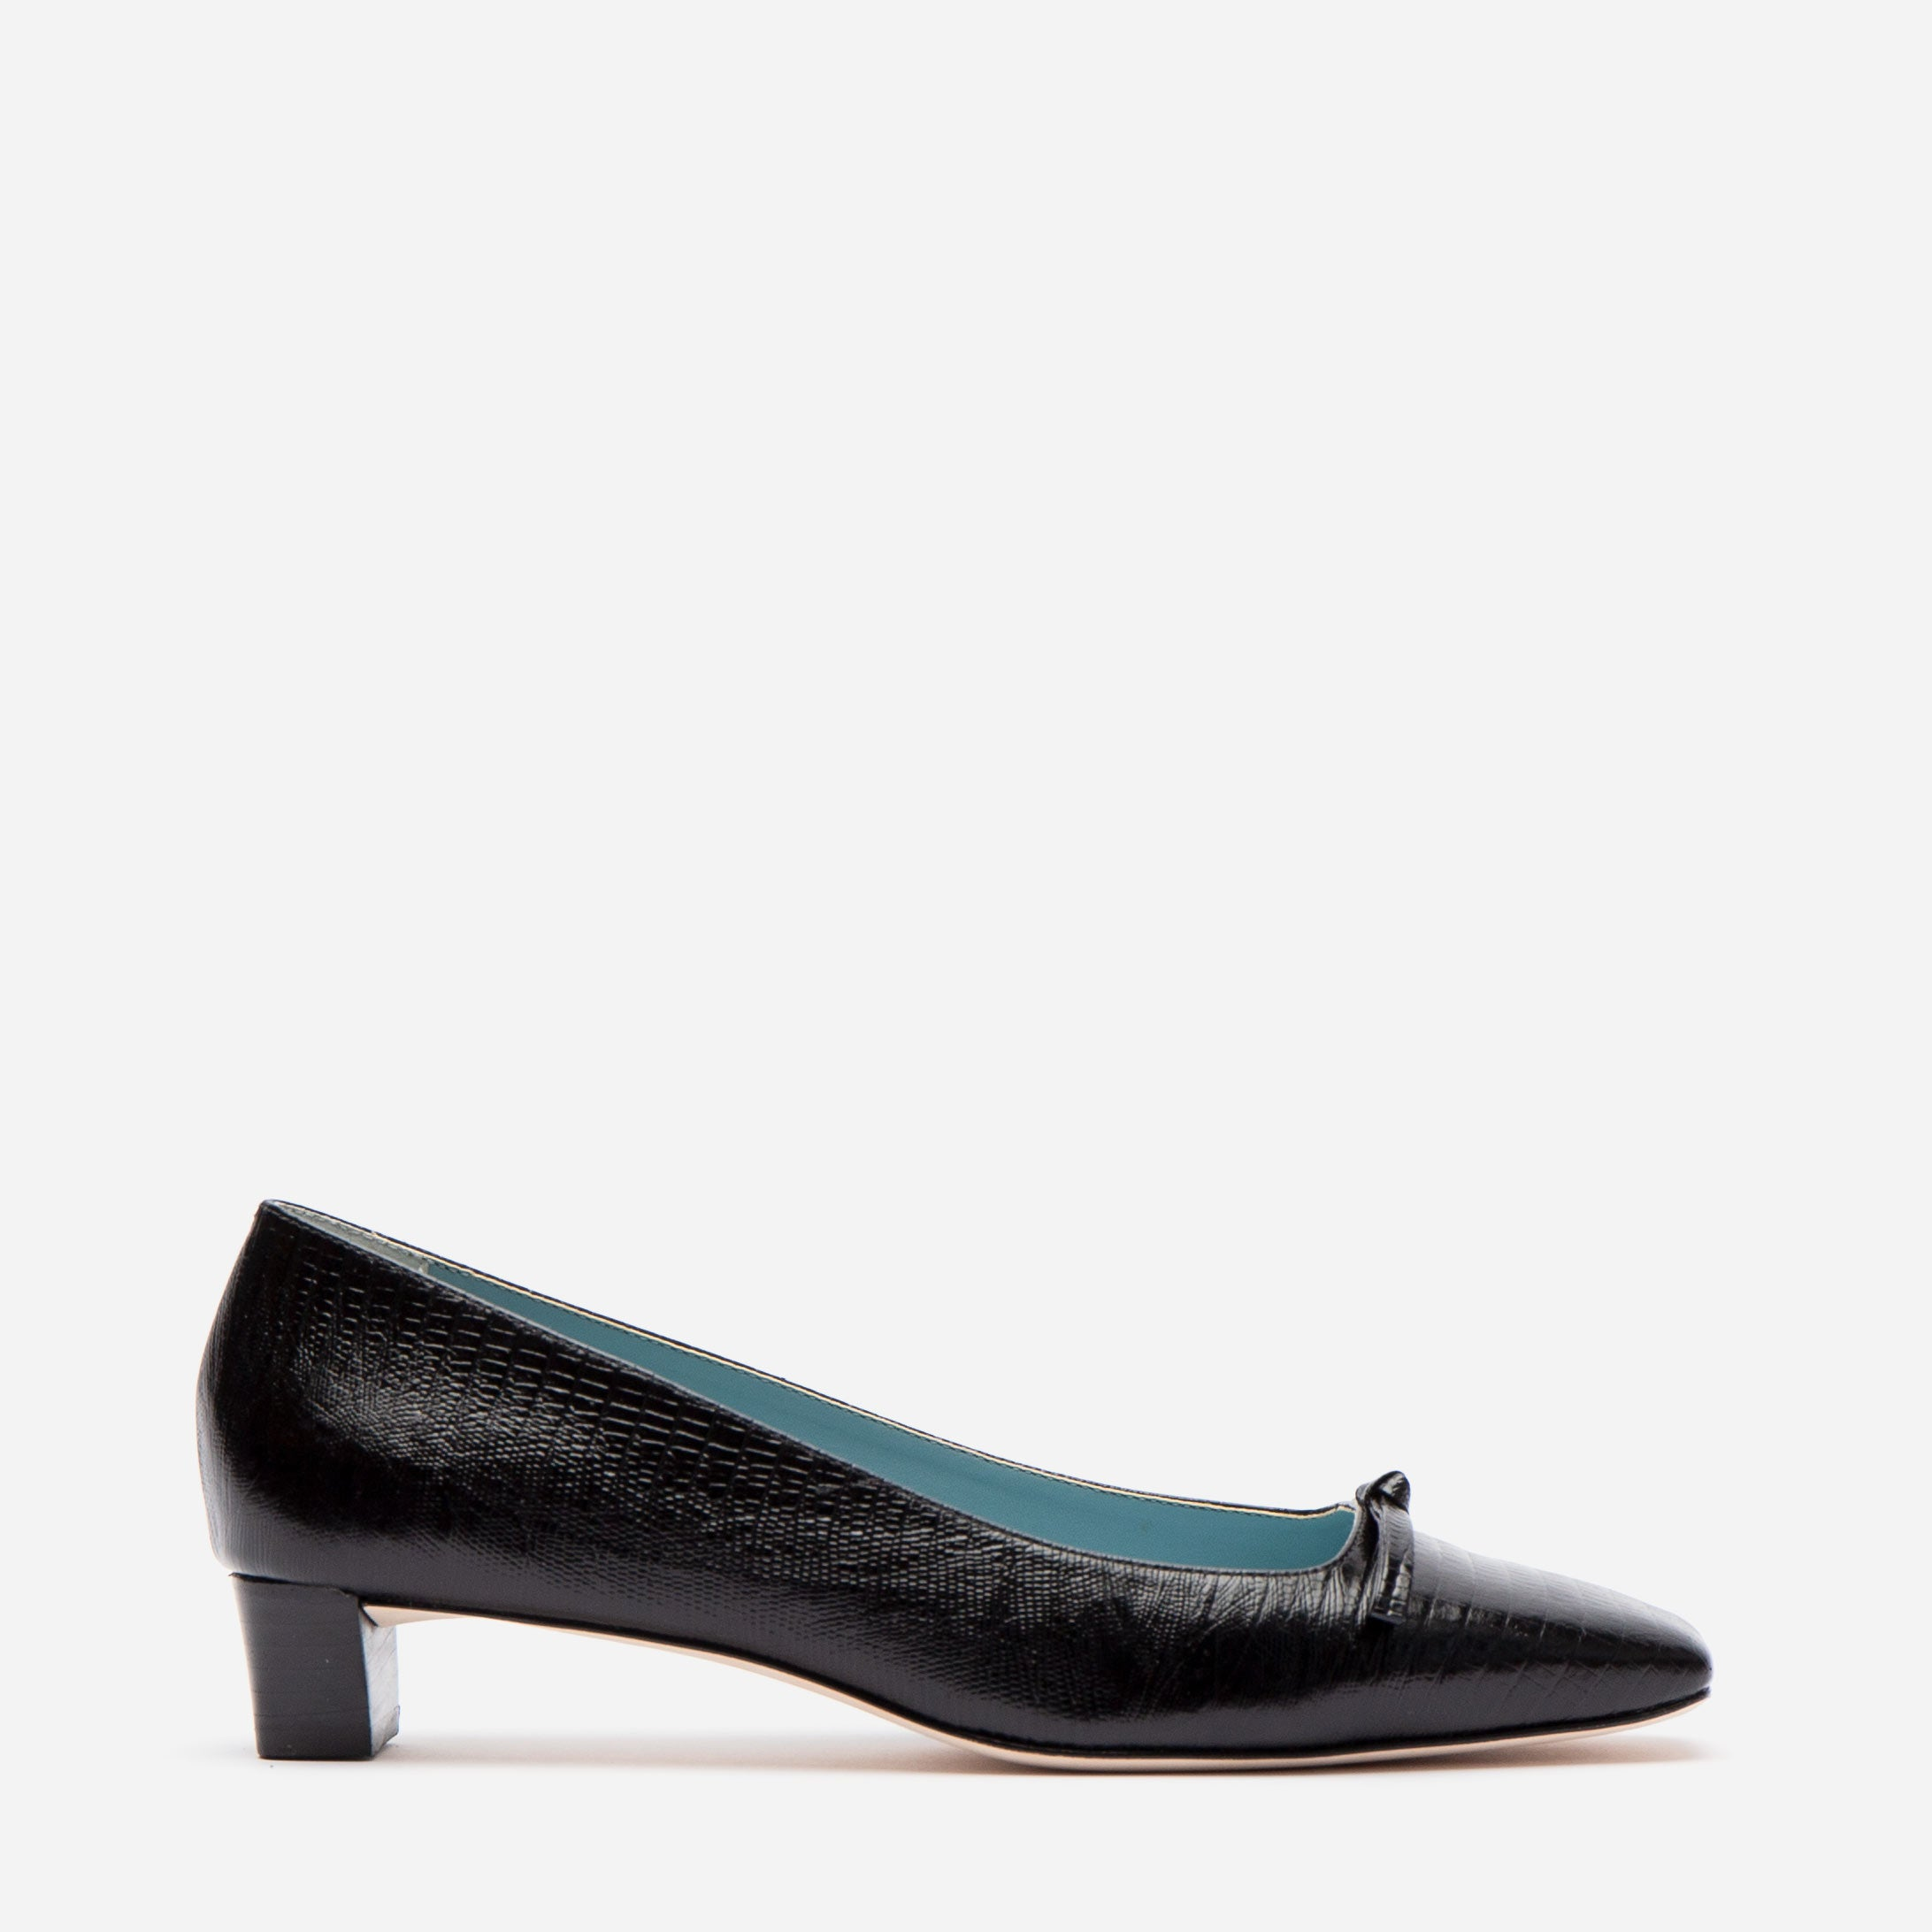 Mary Mini Block Heel Lizard Embossed Black - Frances Valentine